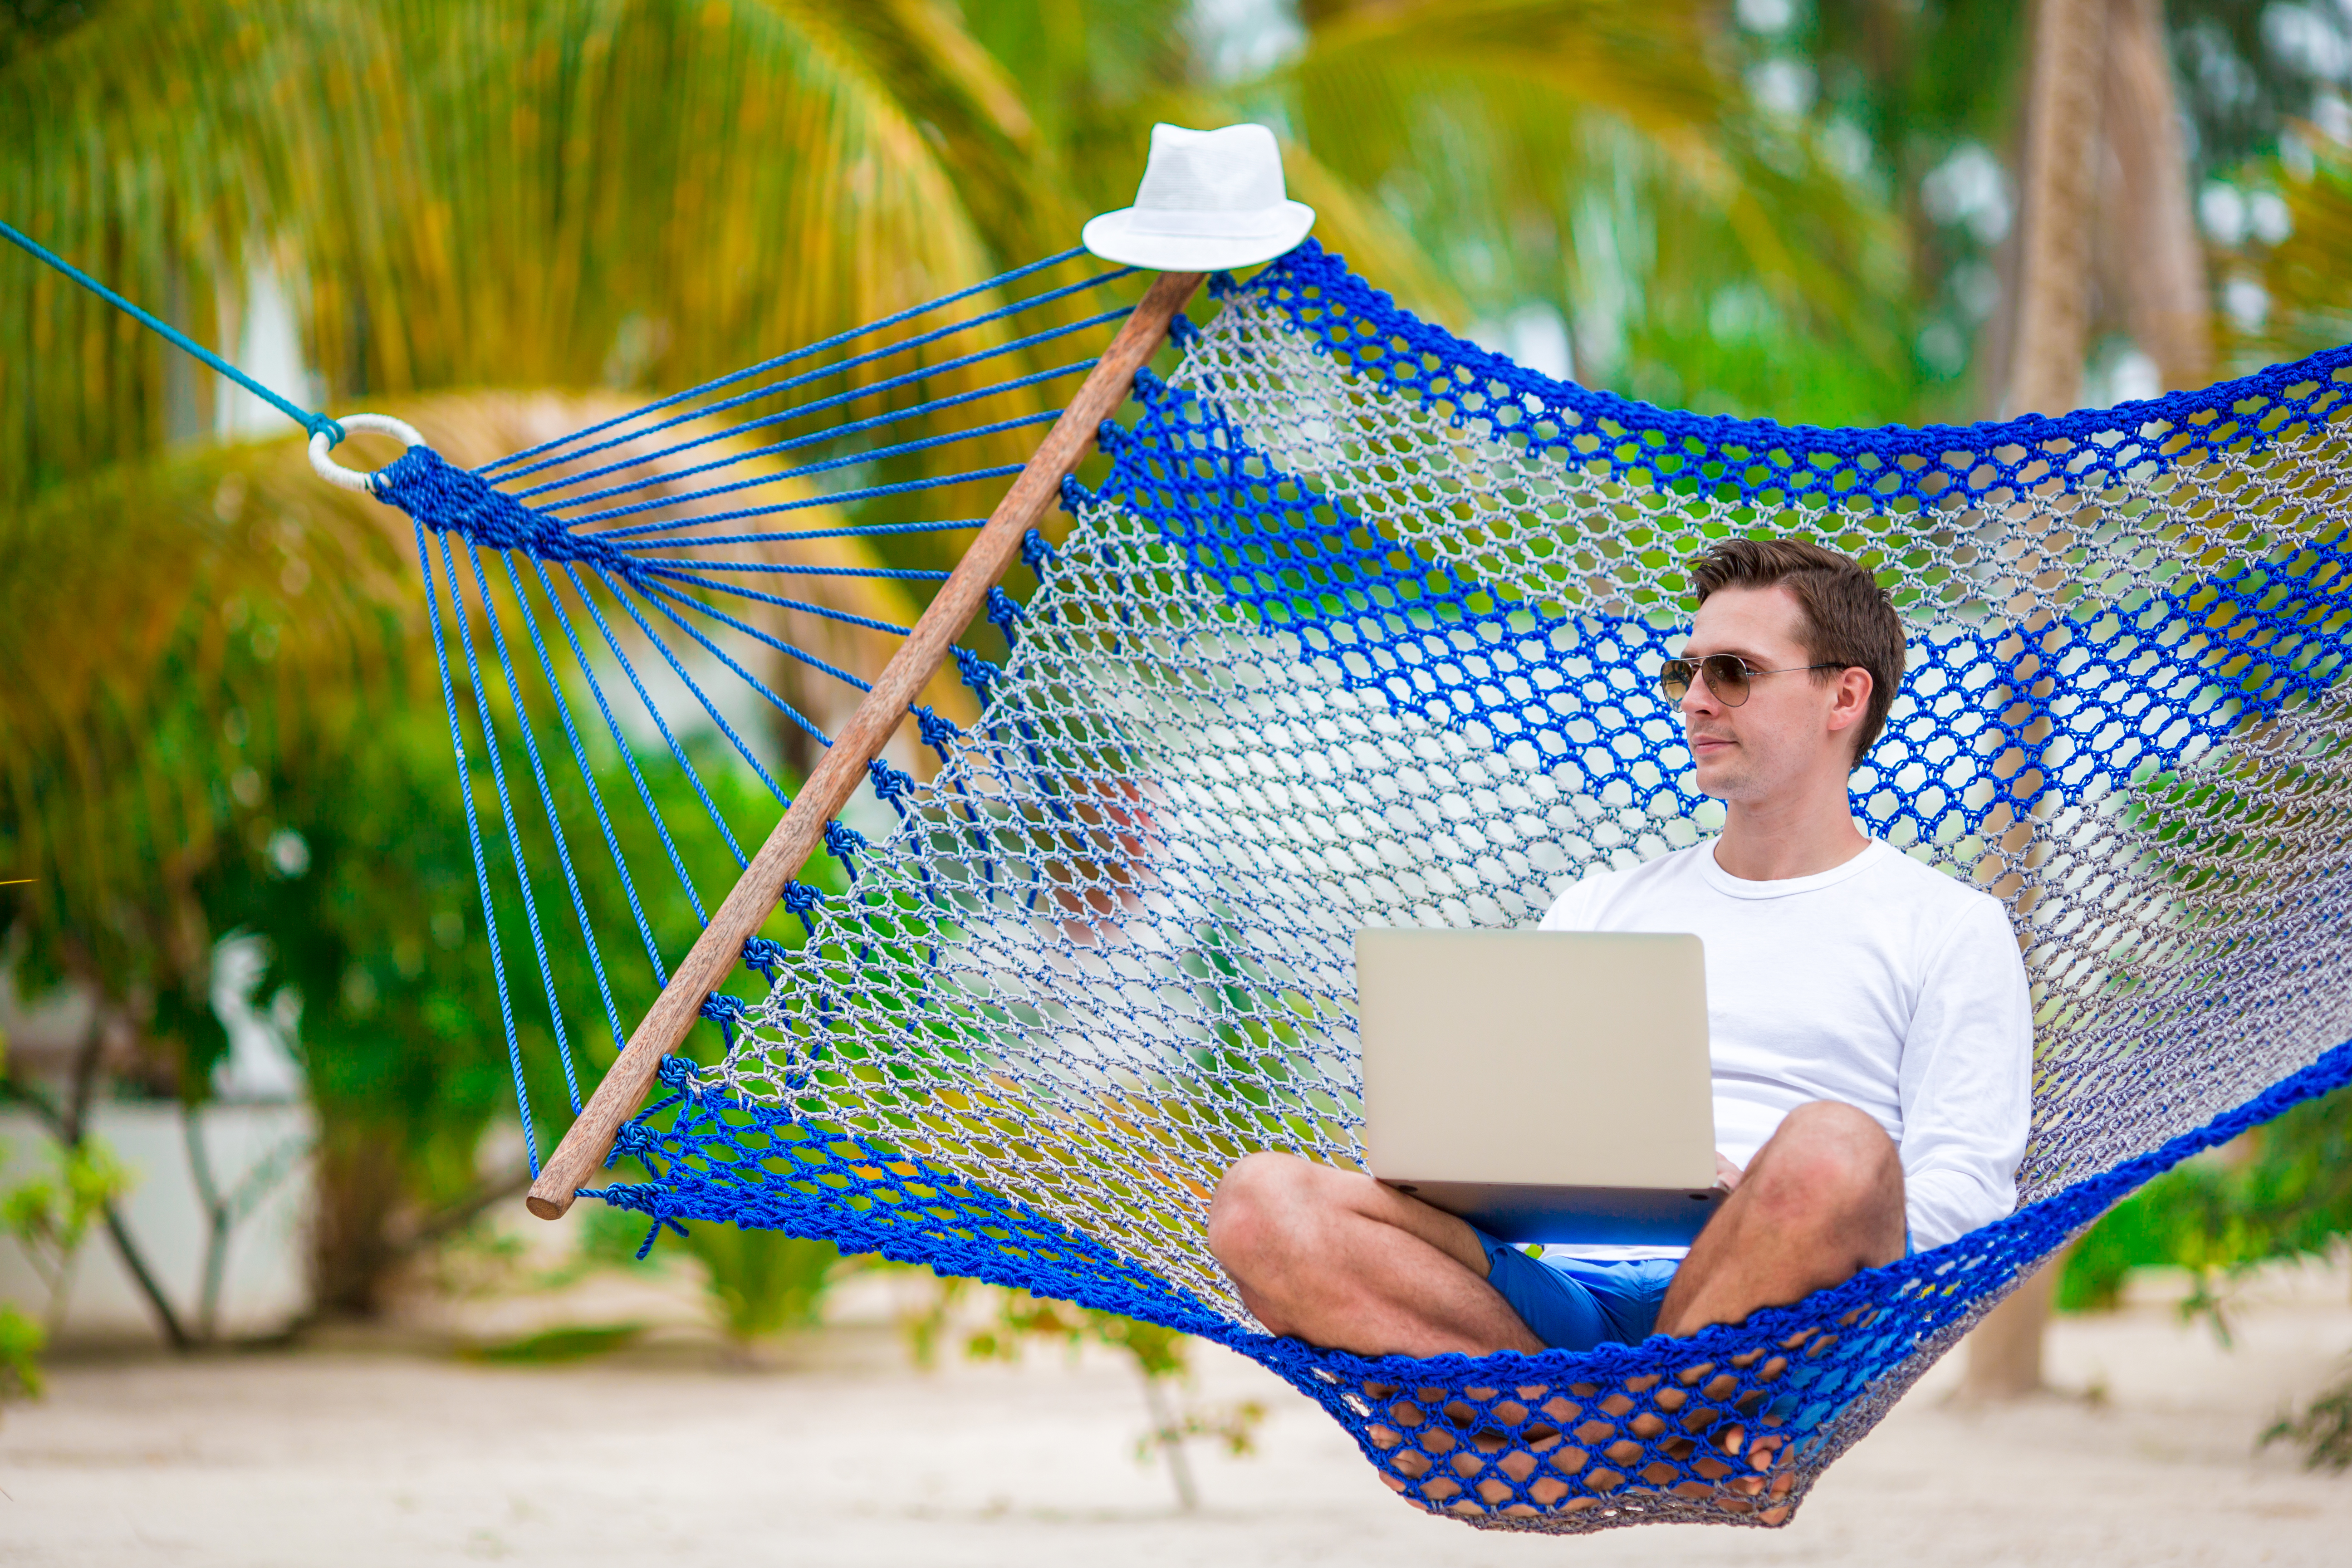 Workation and digital nomads